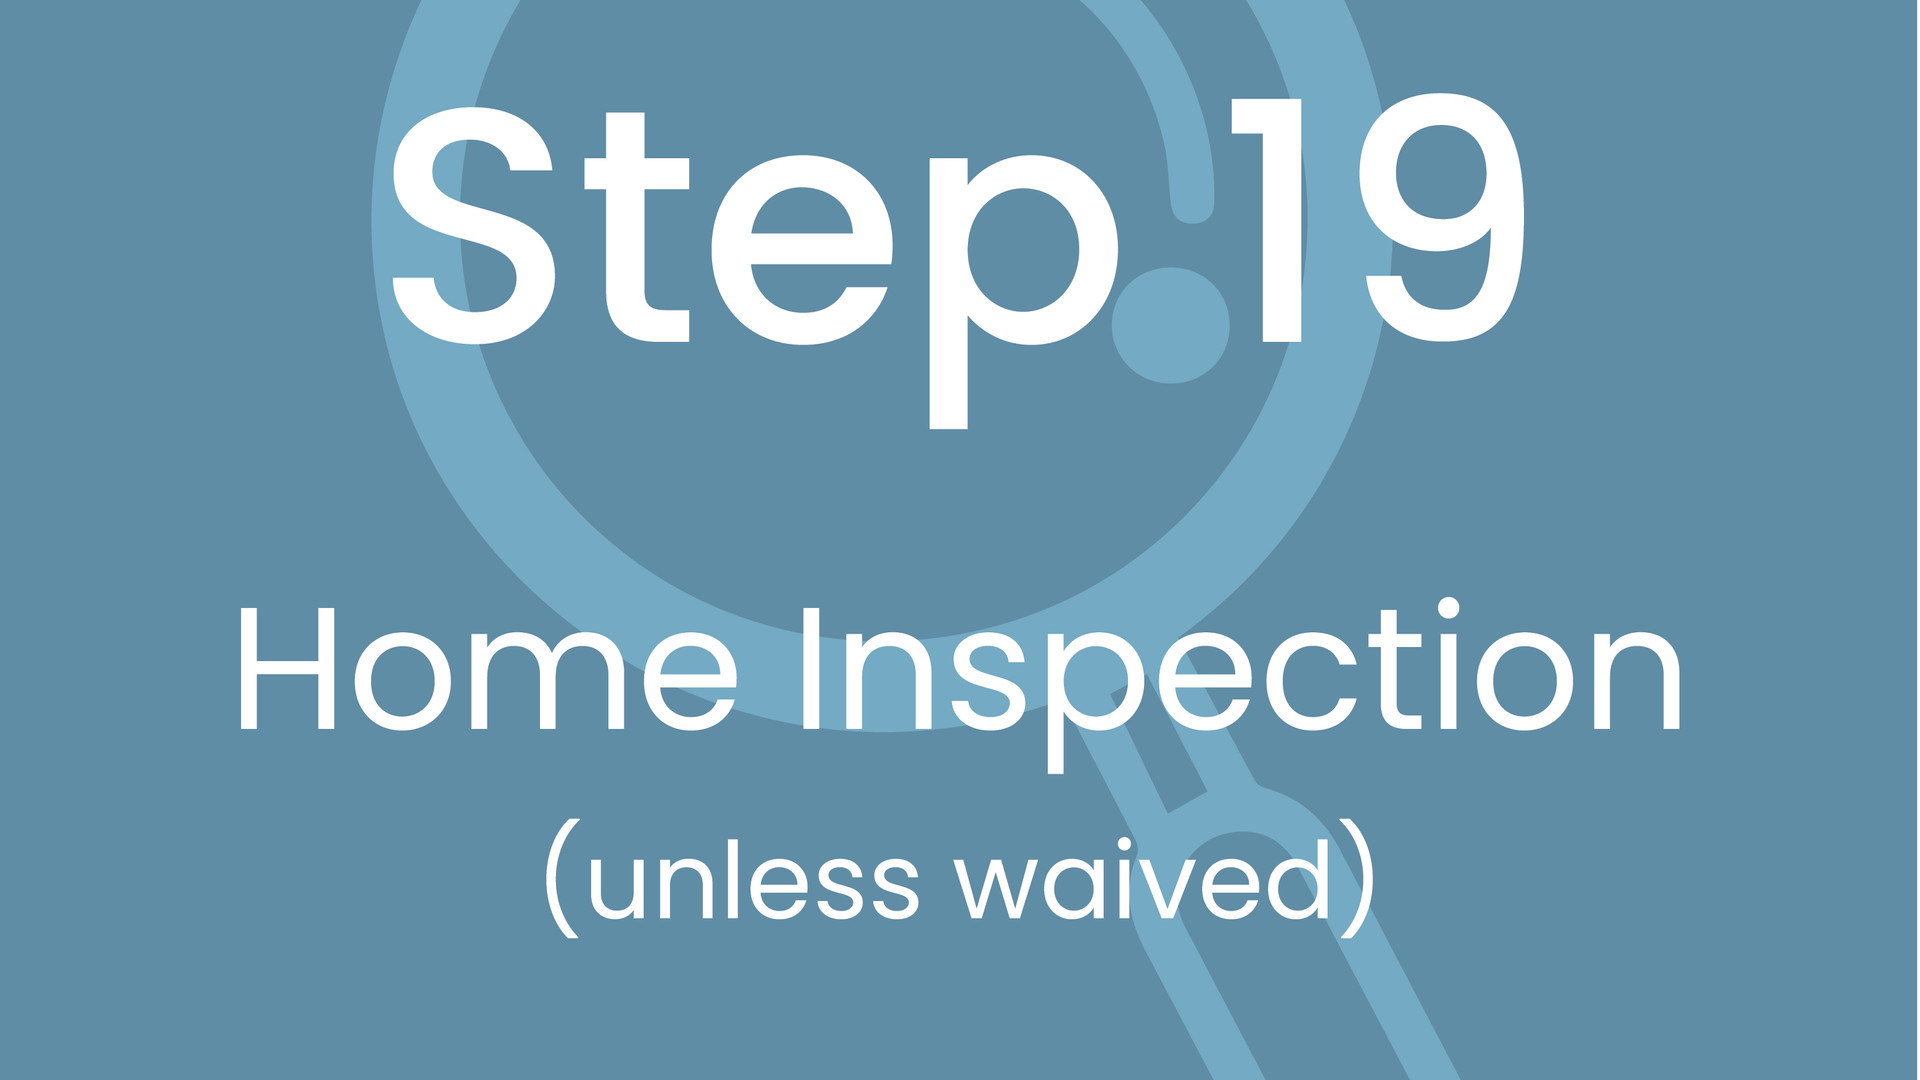 Step 19: Home Inspection (unless waived)